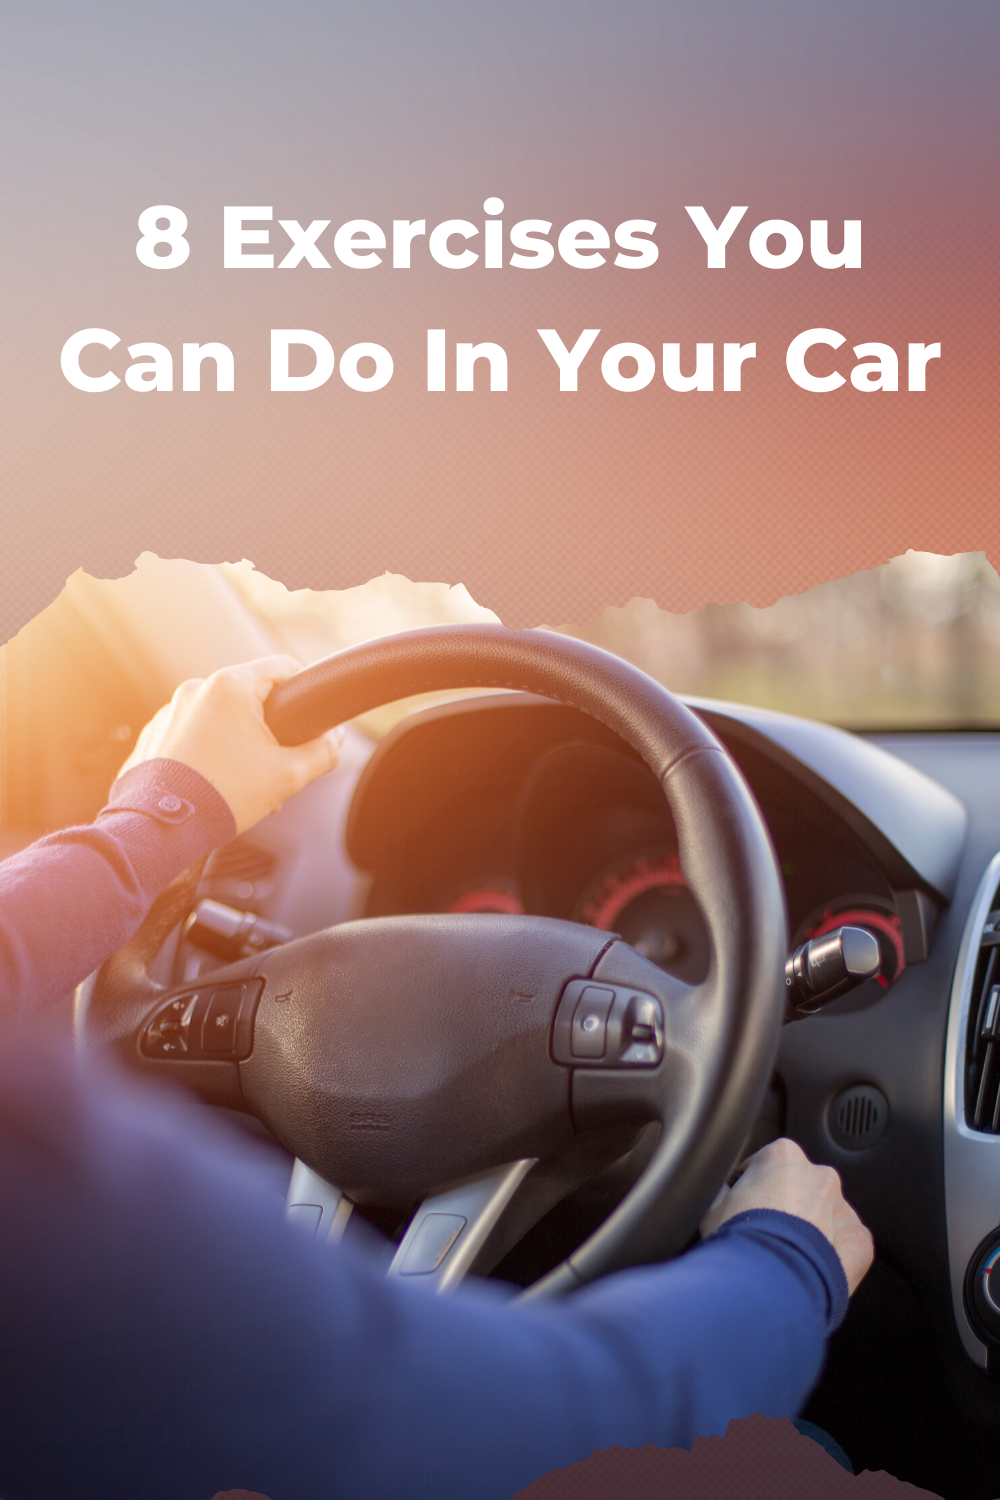 exercises you can do in your car